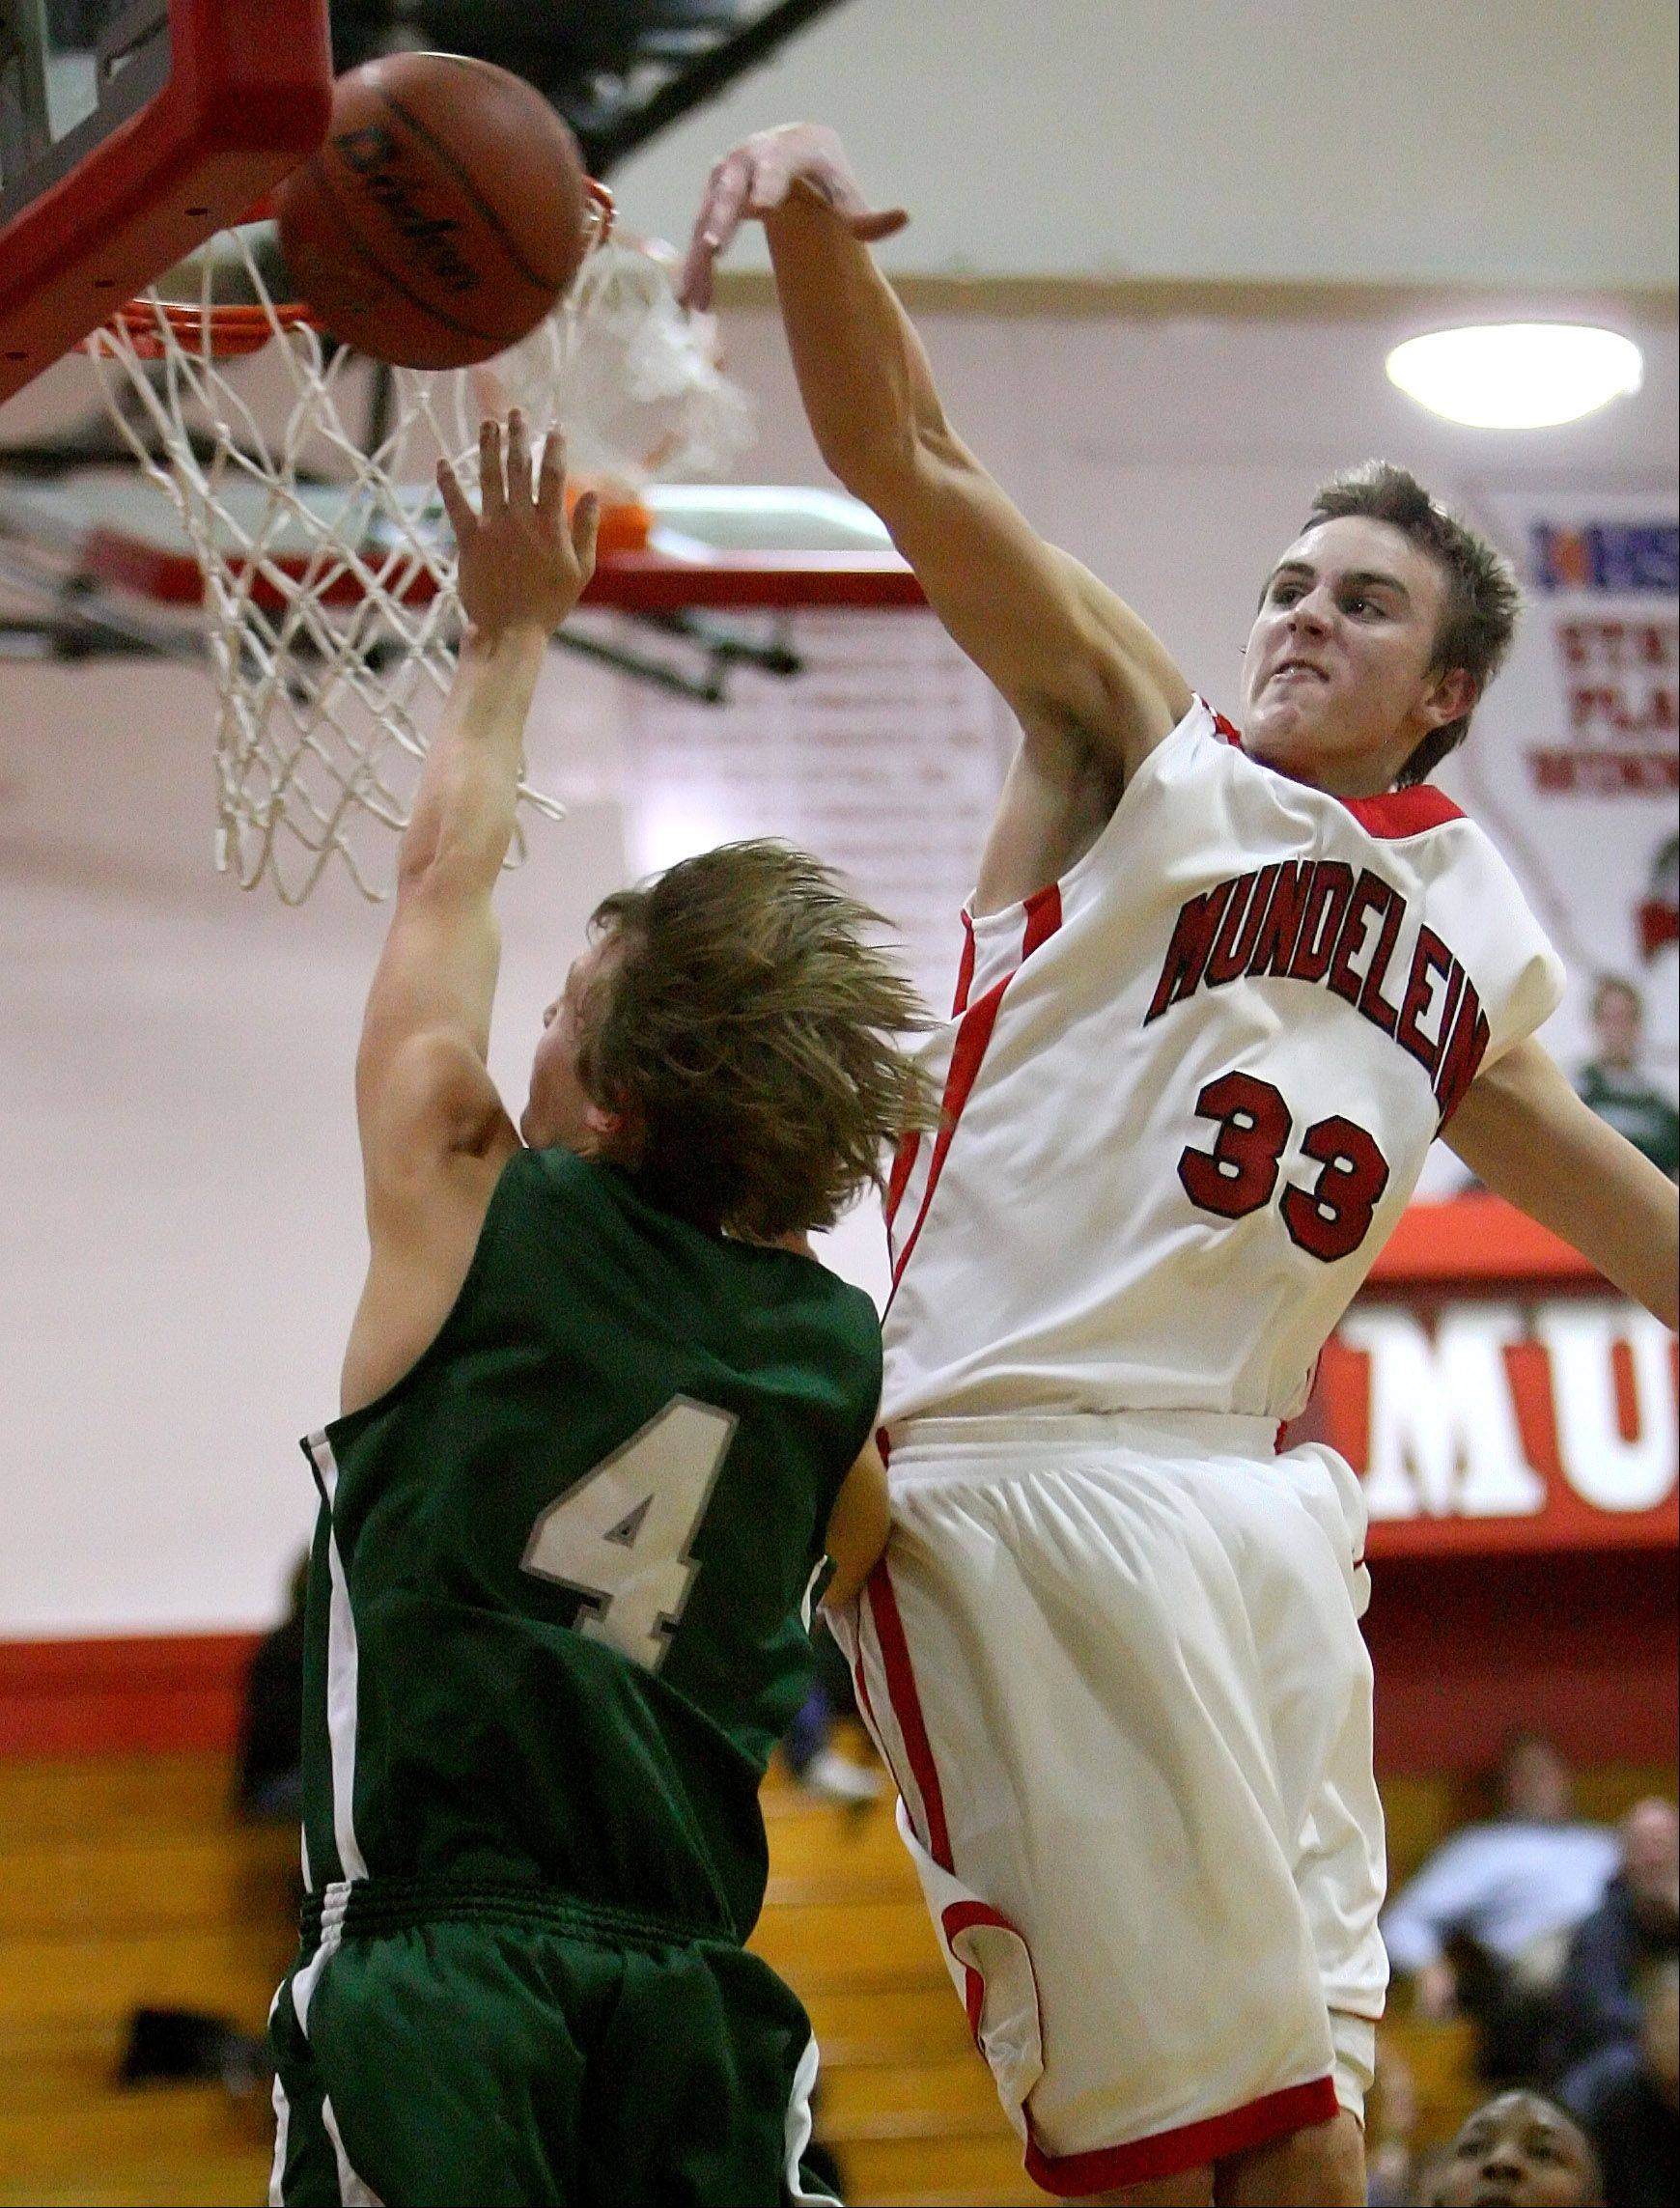 Mundelein's Sean O'Brien, right, blocks a shot.